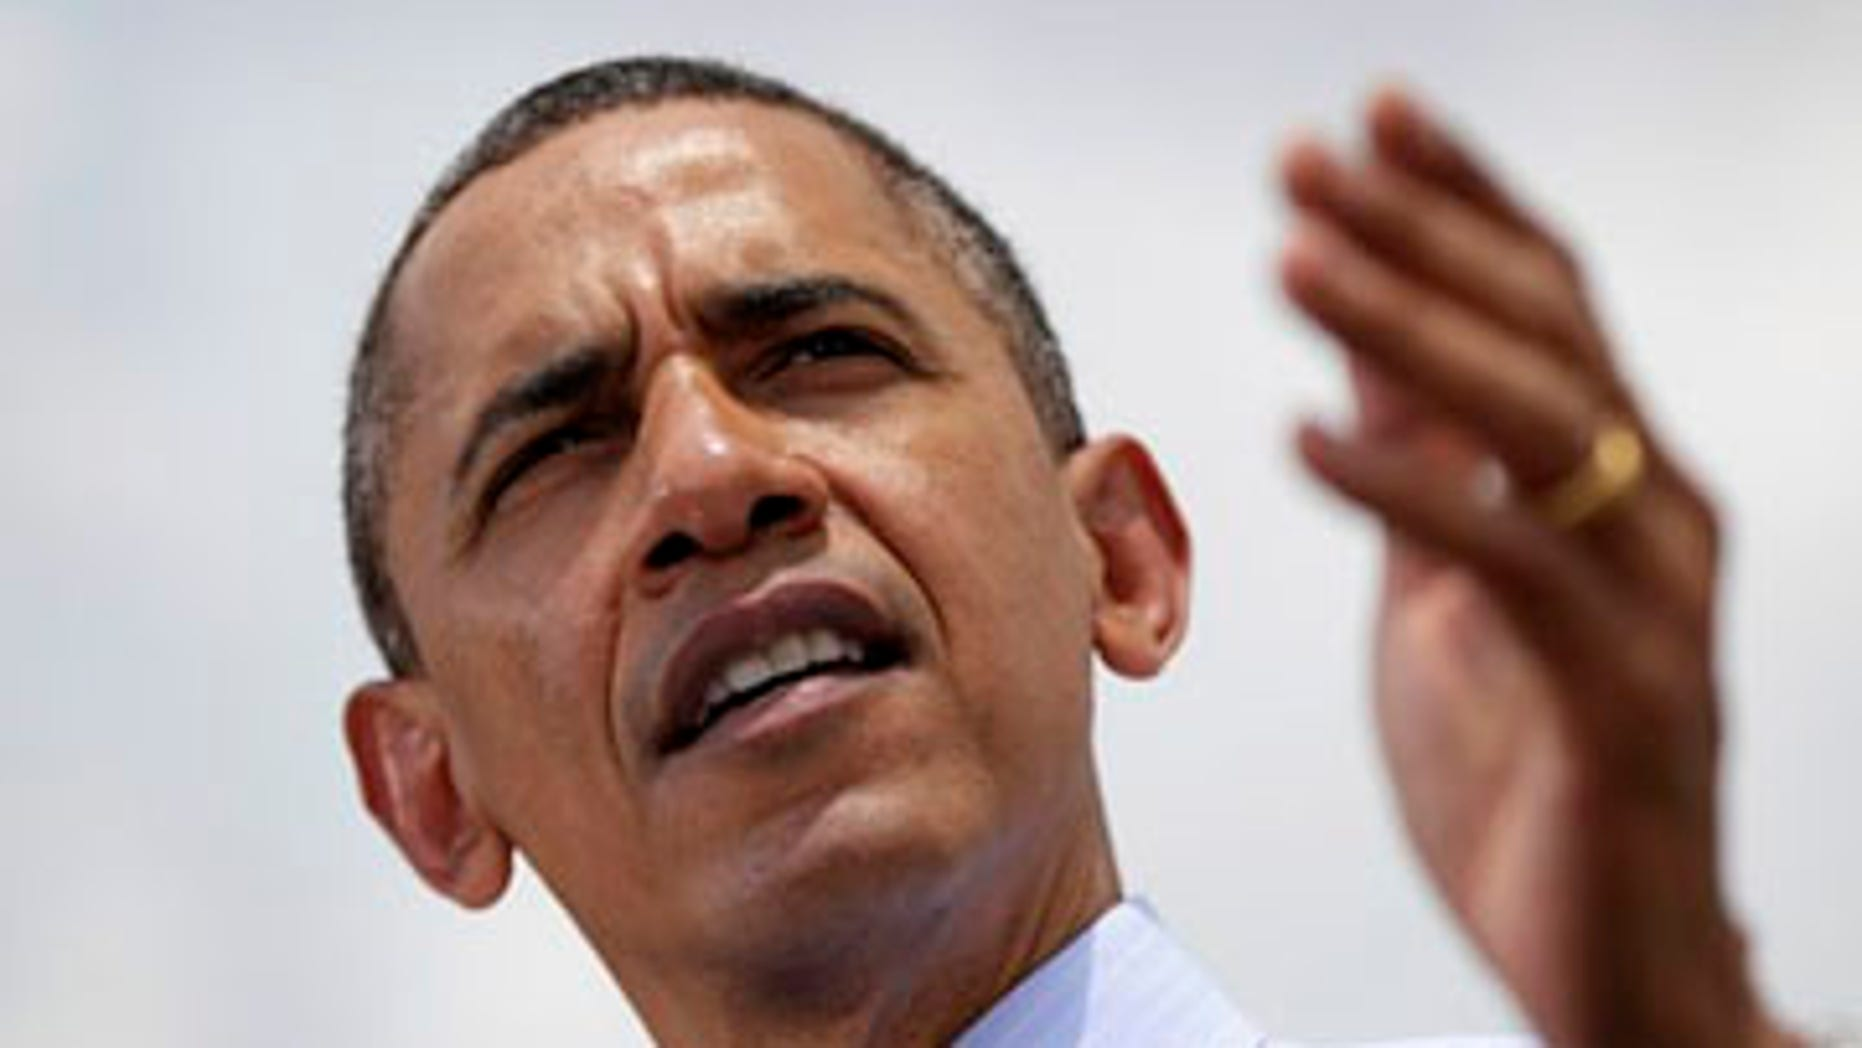 April 13, 2012: President Barack Obama in Tampa, Fla., speaks about trade before heading to the Summit of the Americas.